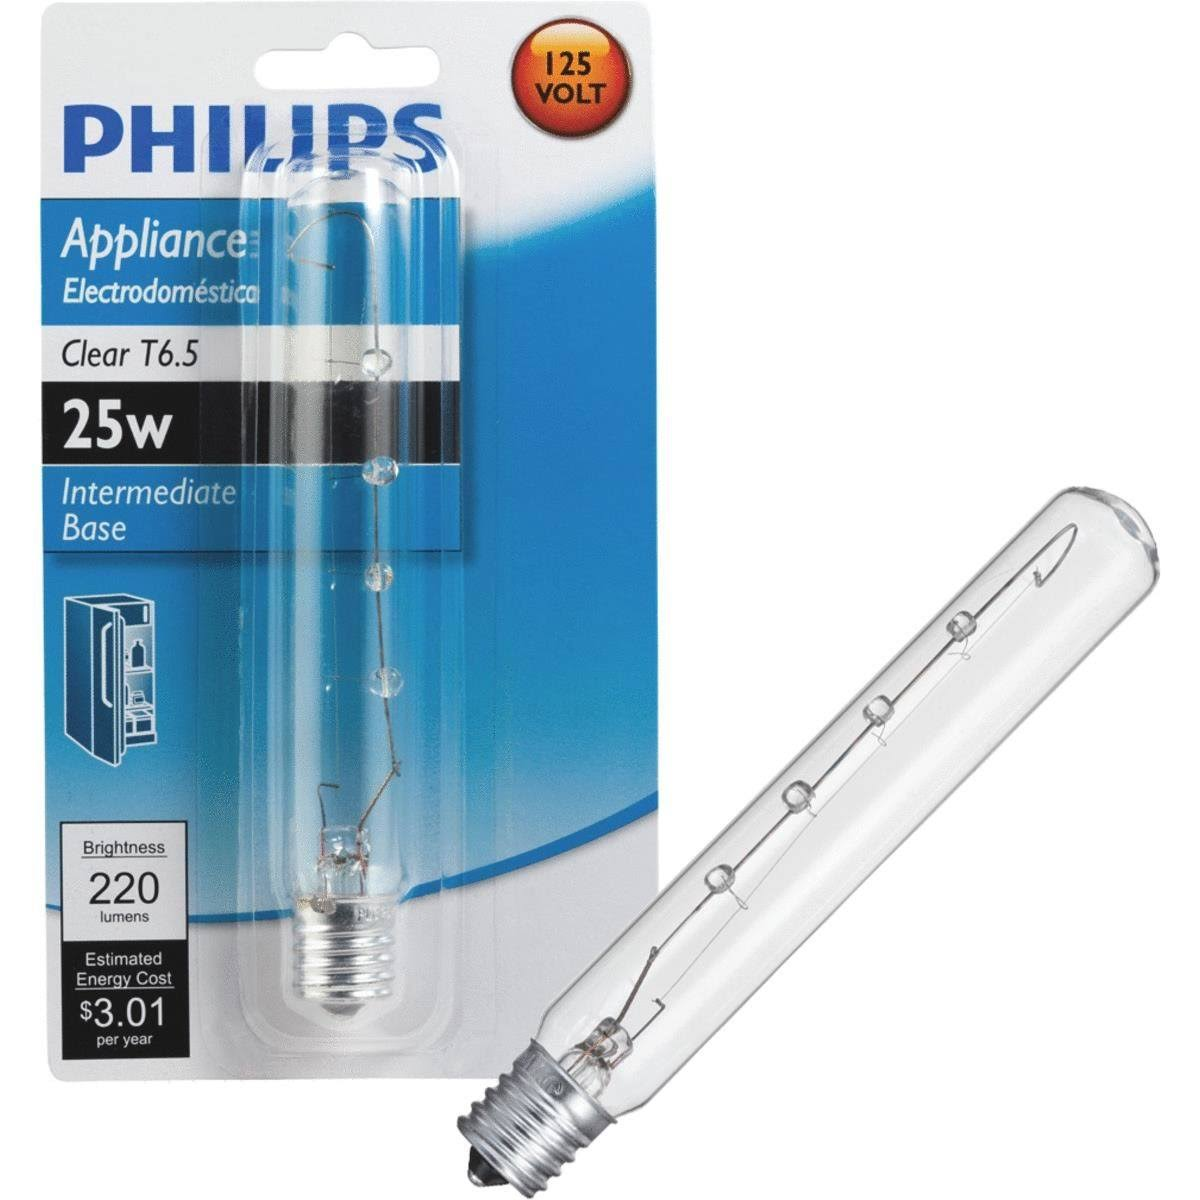 Philips Clear T6.5 Appliance Intermediate Base Light Bulb - 25w